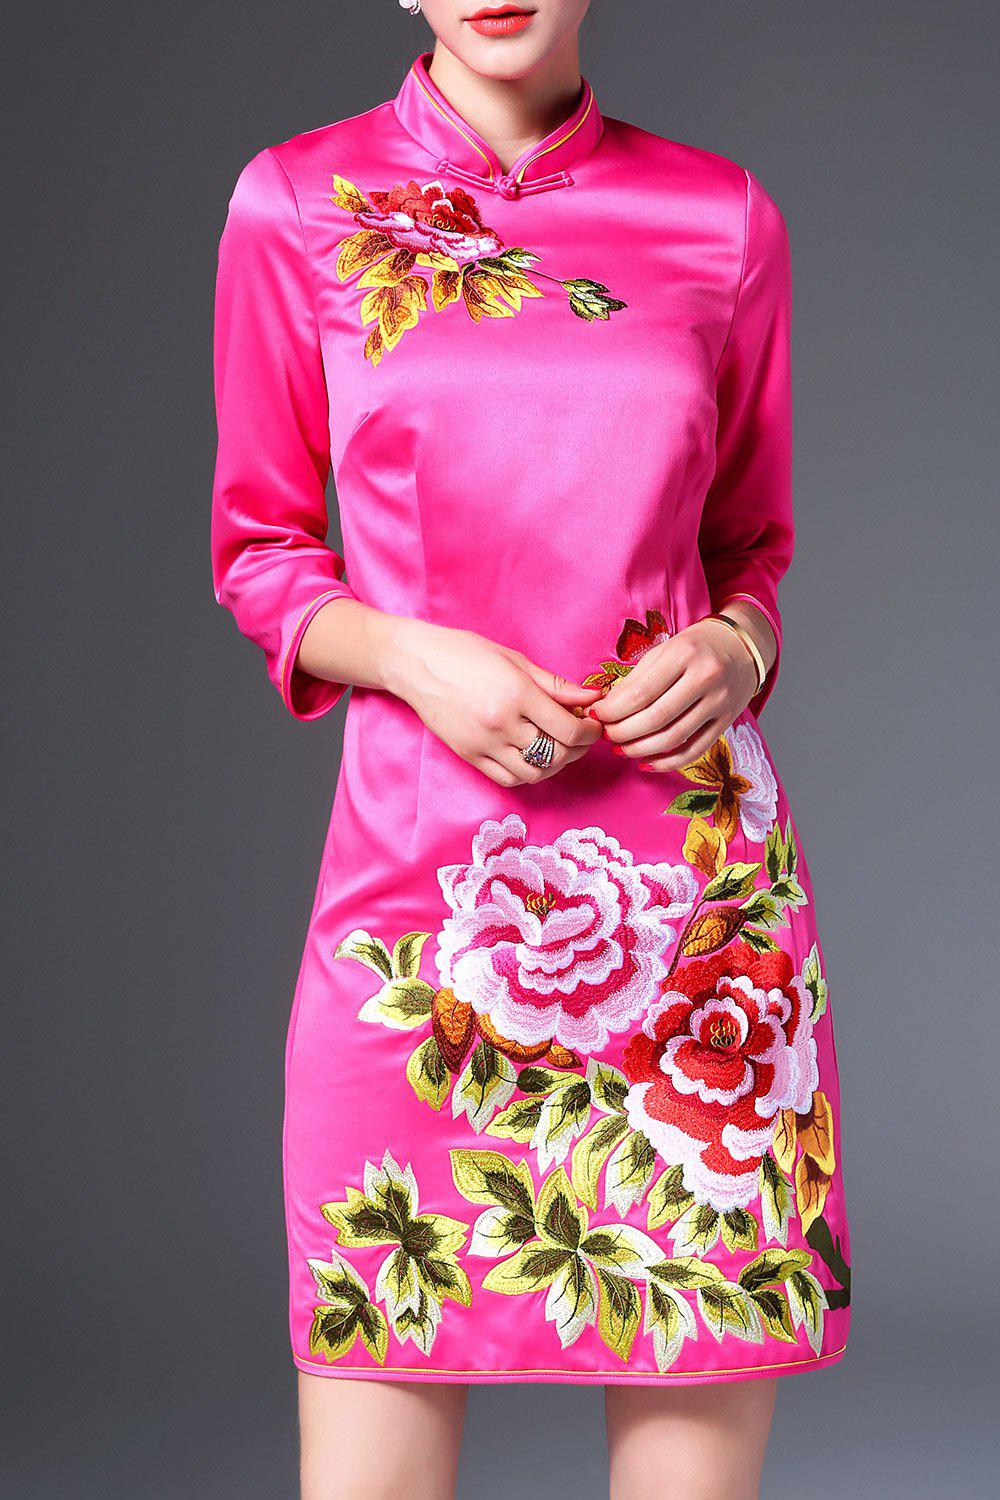 Flower Embroidered Cheongsam Mini Dress - TUTTI FRUTTI M